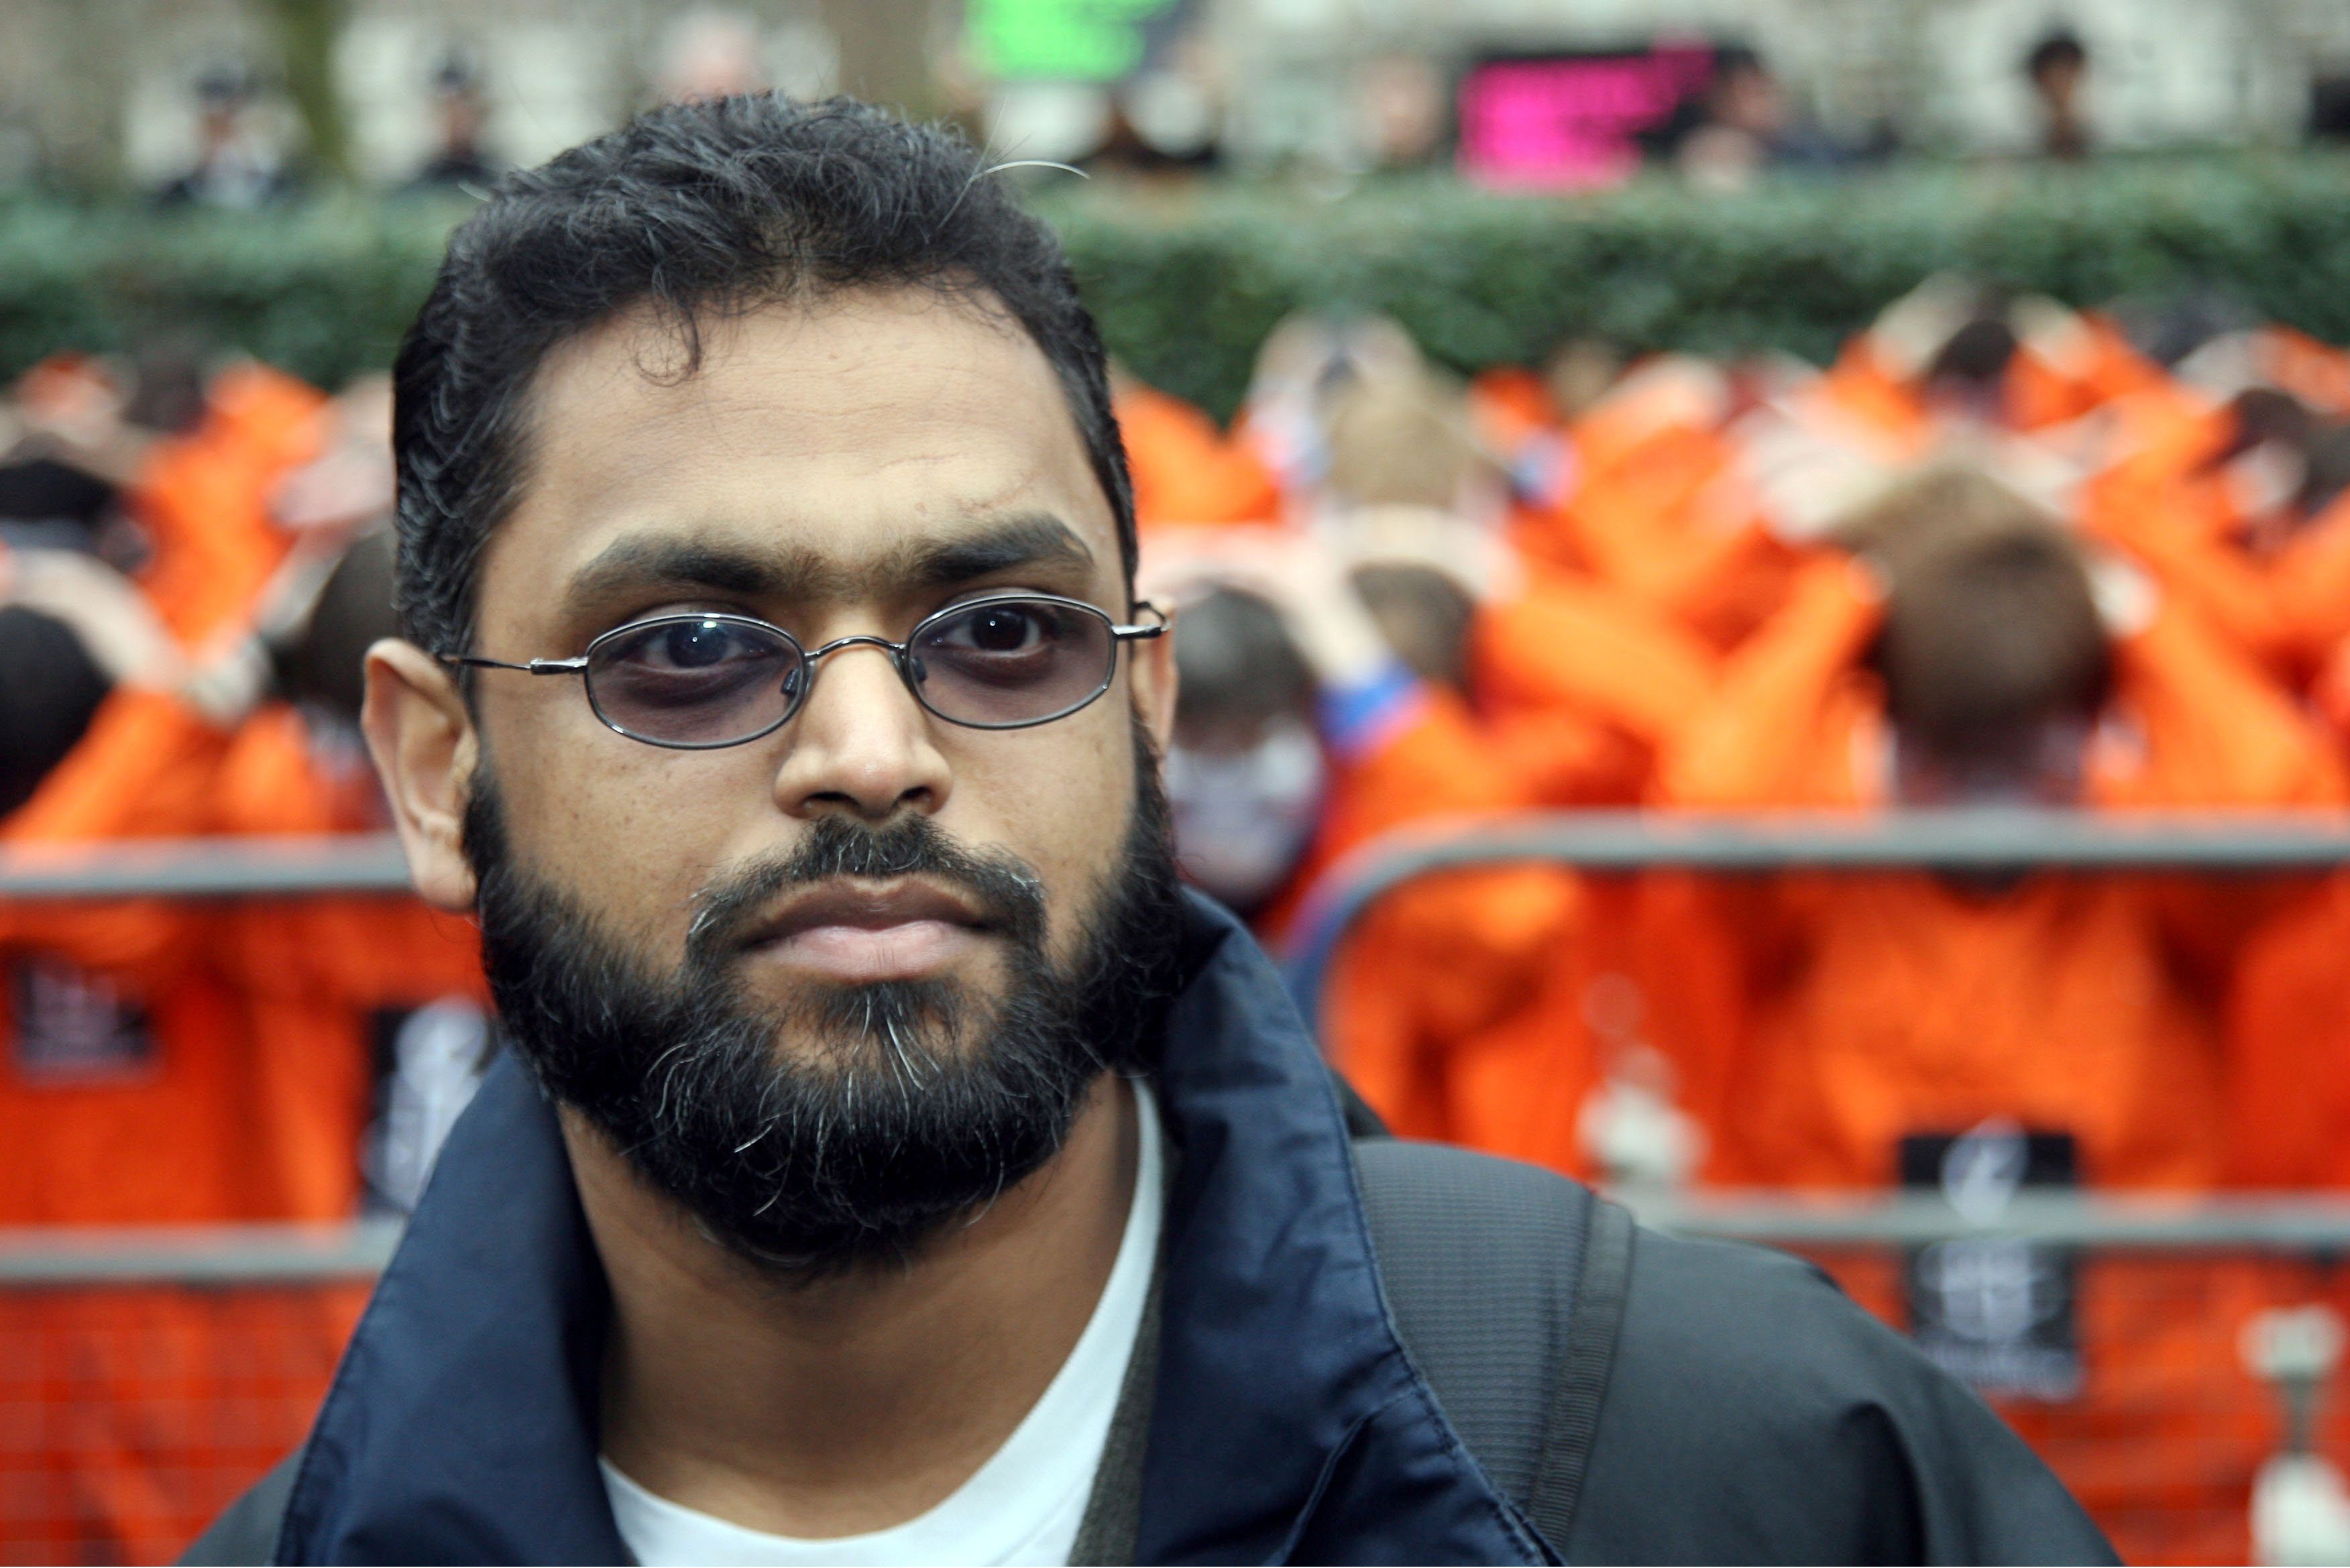 Ex-Guantanamo Bay prisoner condemns waterboarding and confronts racism at KU talk